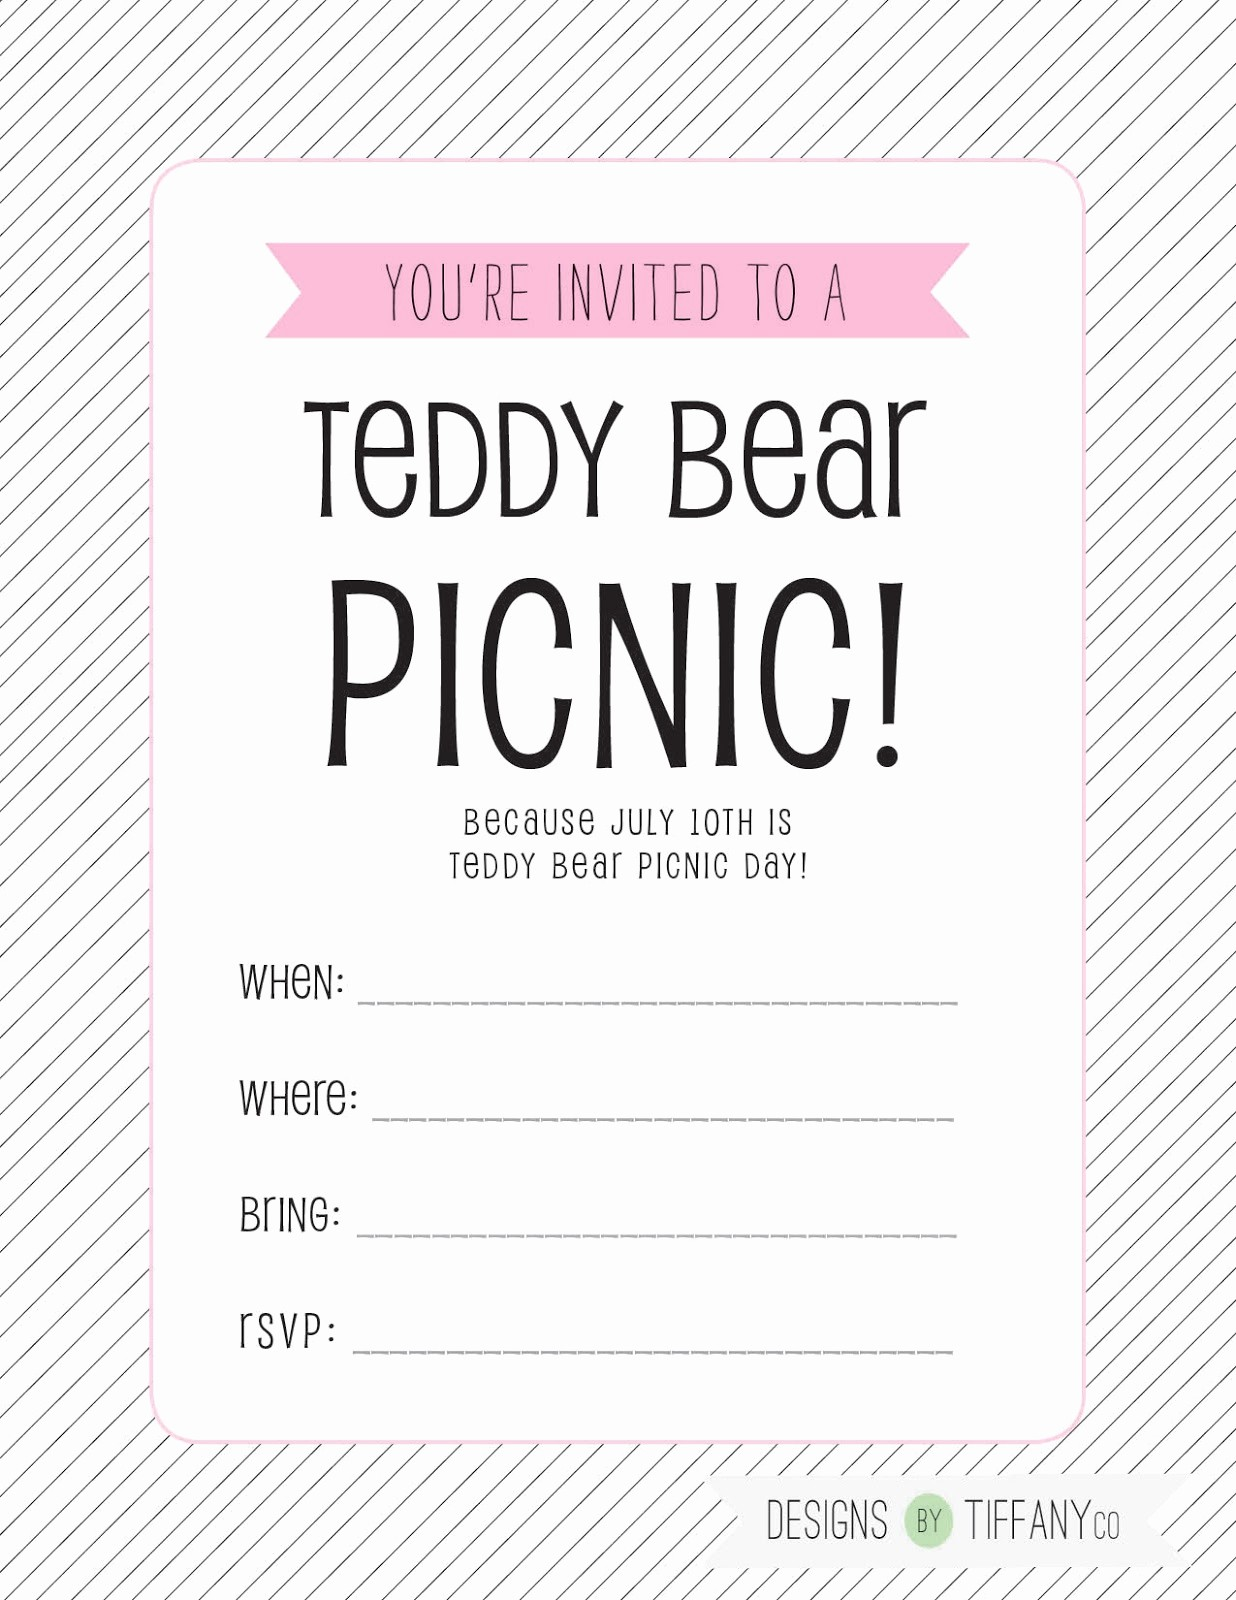 Free Printable Picnic Invitation Template New Free Printable July 10th is Teddy Bear Picnic Day